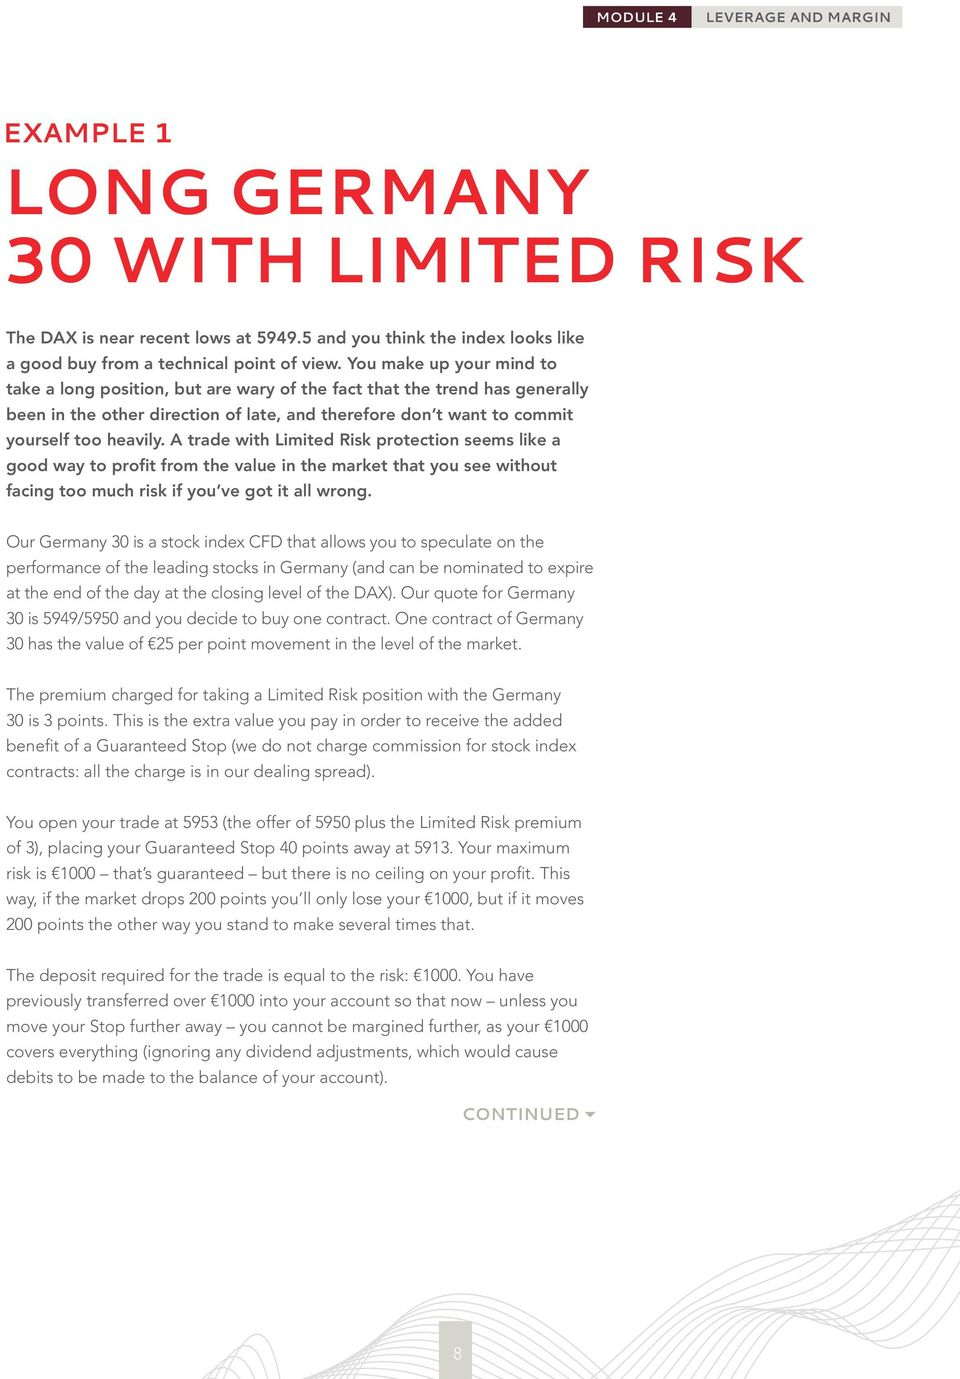 A trade with Limited Risk protection seems like a good way to profit from the value in the market that you see without facing too much risk if you ve got it all wrong.